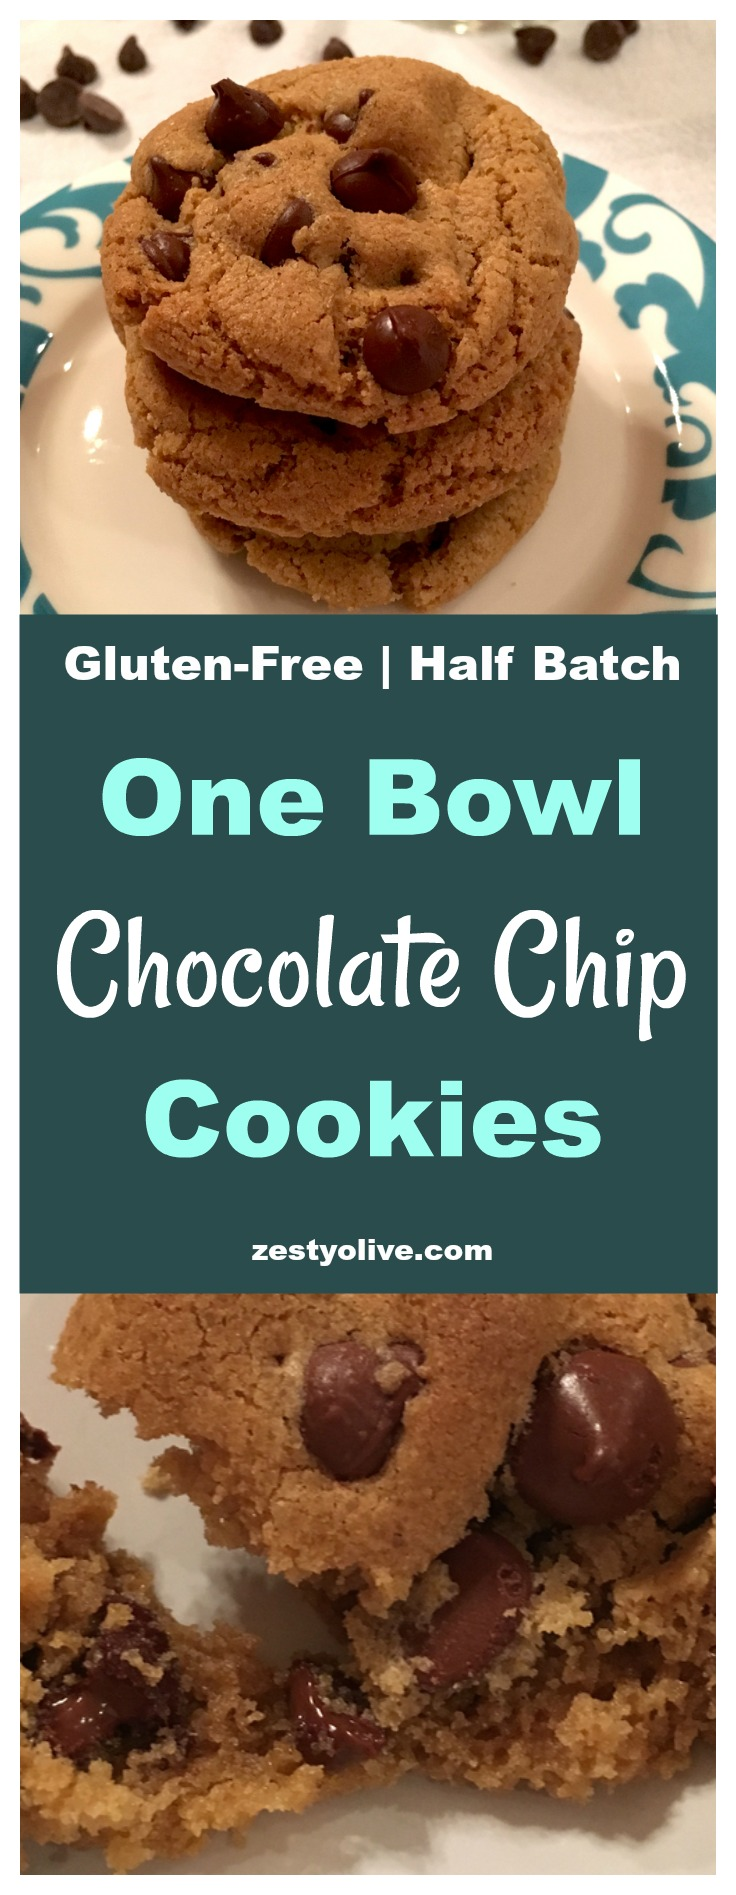 Easy Gluten-Free One Bowl Half Batch Chocolate Chip Cookies